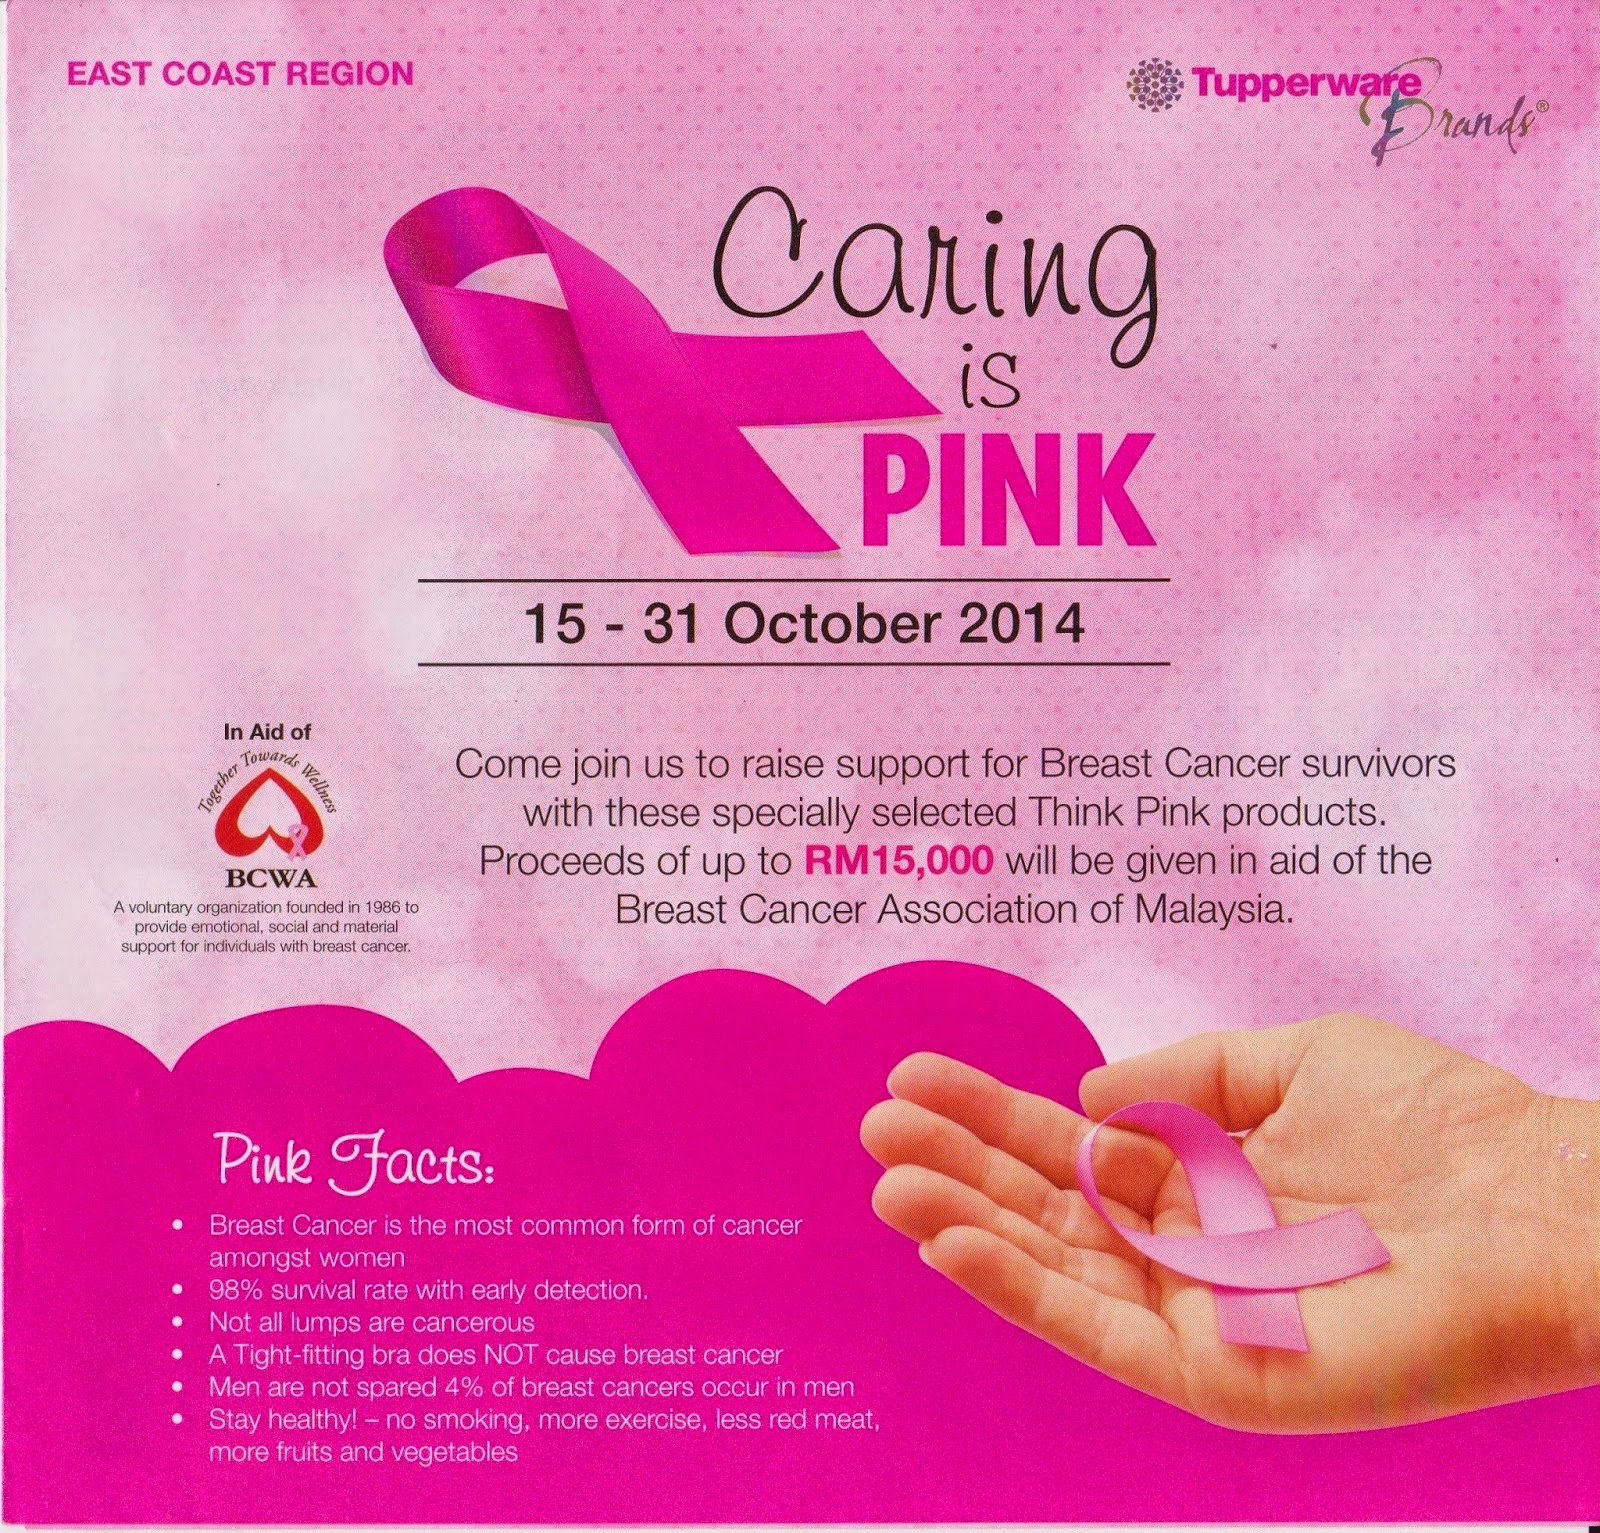 CaRiNg Is PiNk CaMpAiGn 15 31 OcToBeR 2014